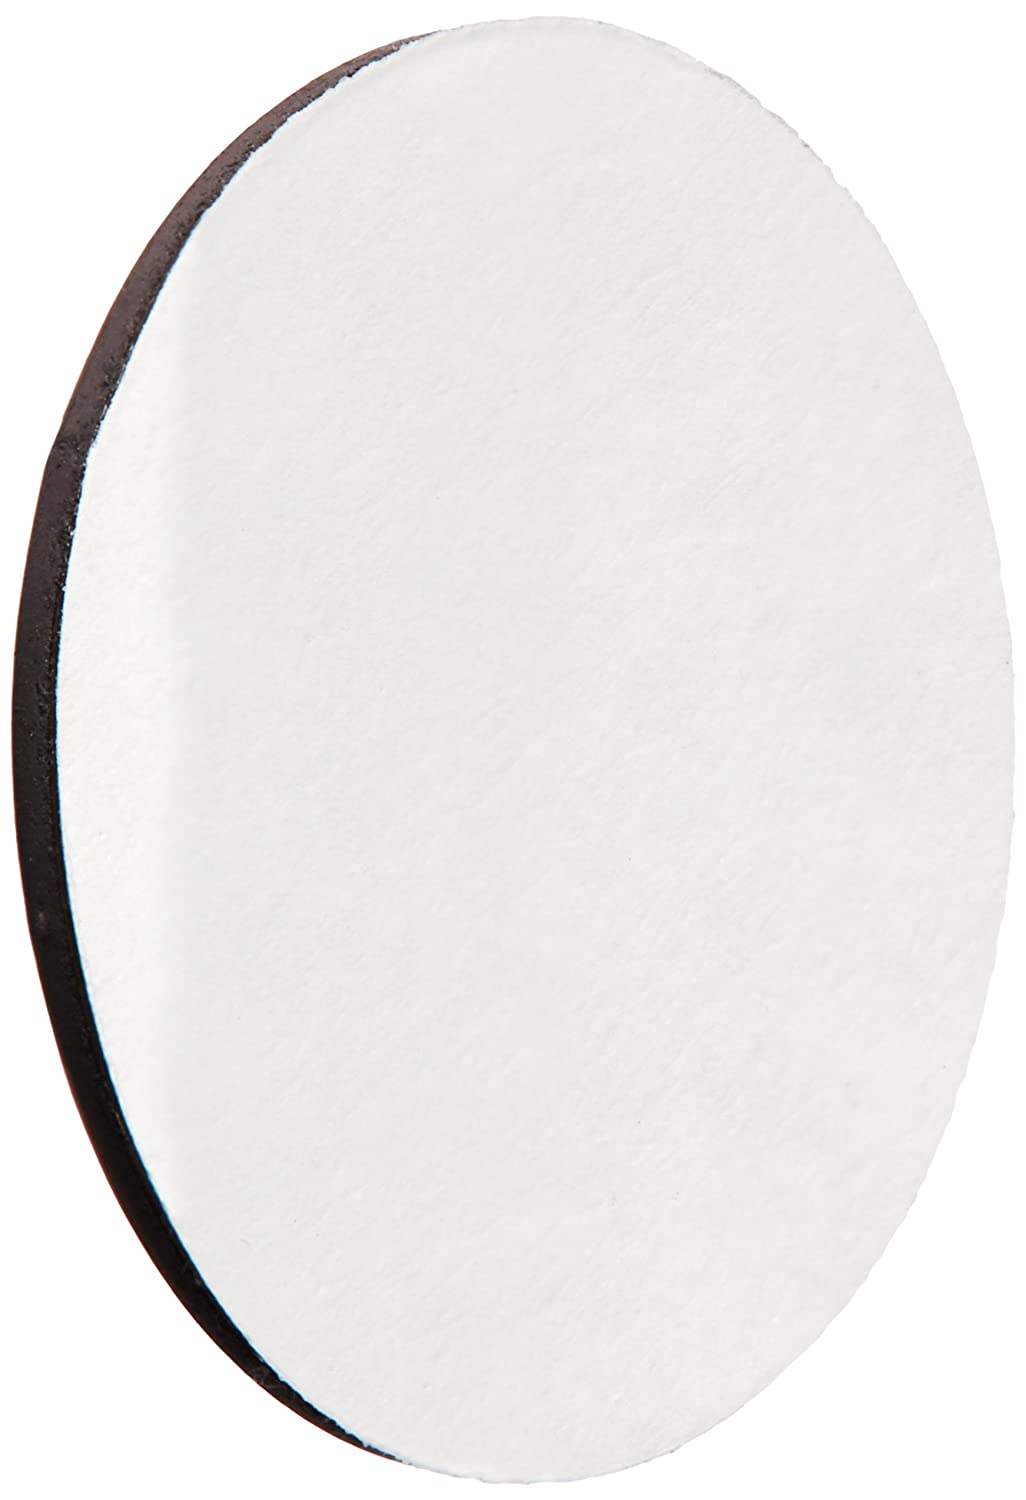 Dowling Magnets 735007 Adhesive Magnet Dots, 5.5' Height, 1' Width, 3.5' Length (Pack of 100)